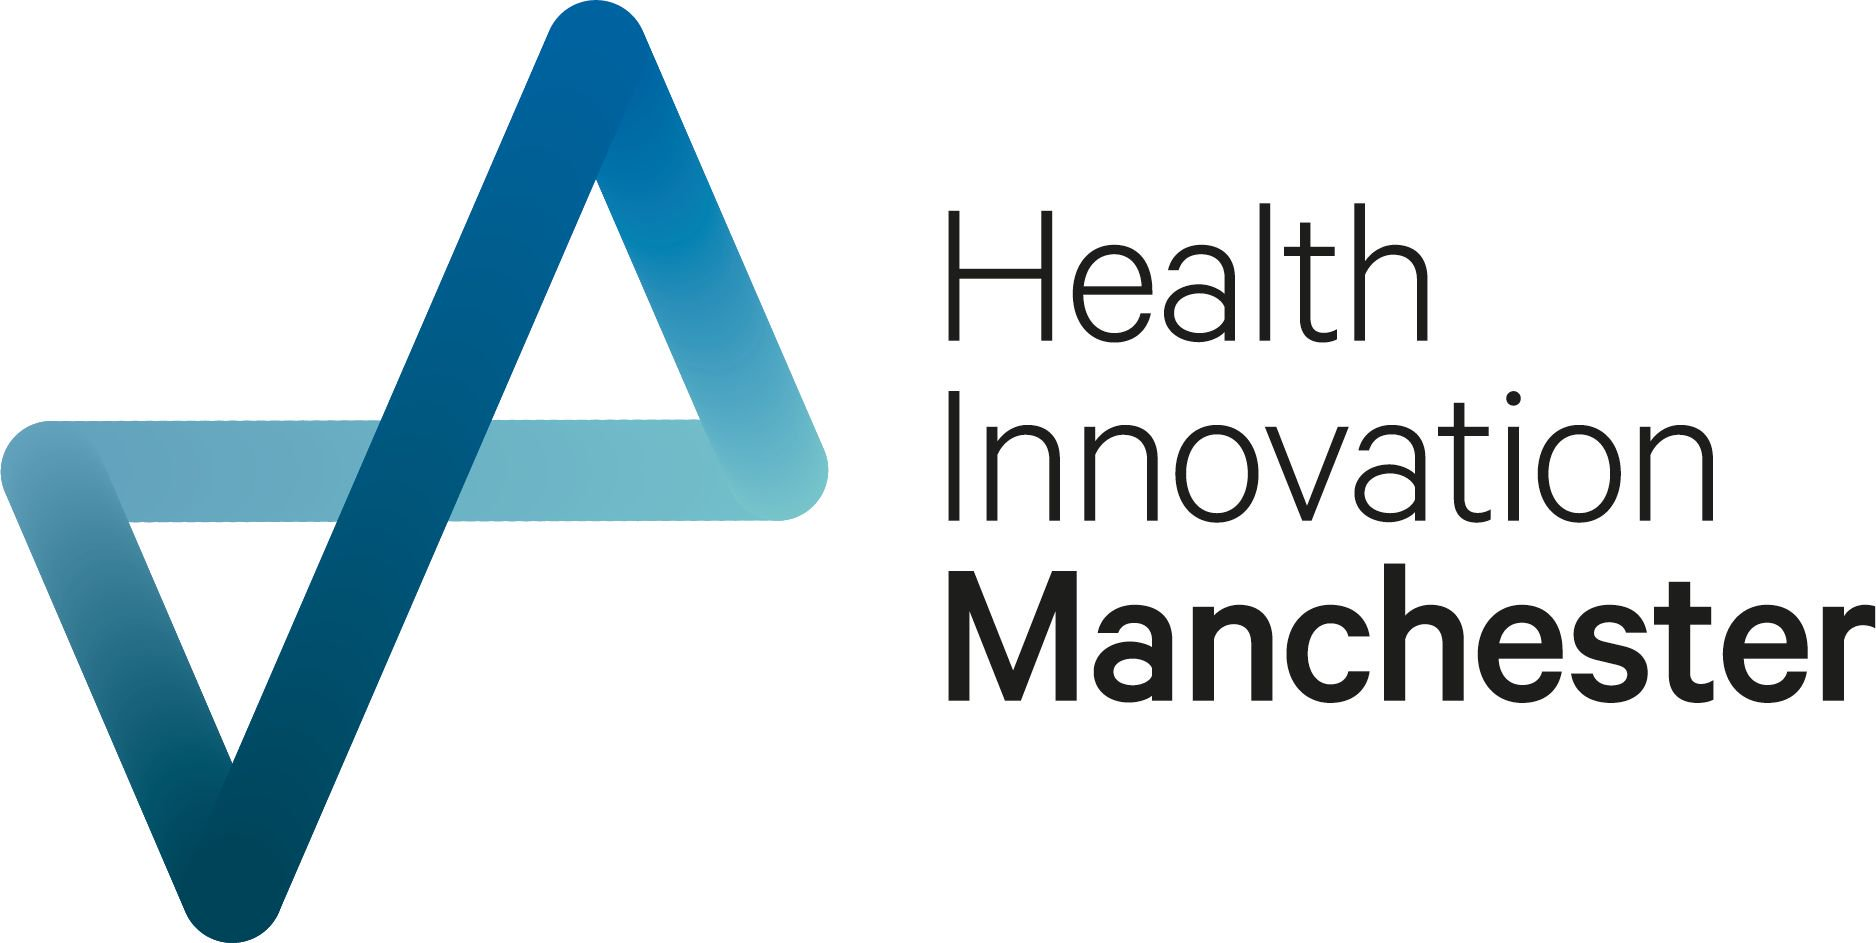 health innovationa manchester logo.jpeg